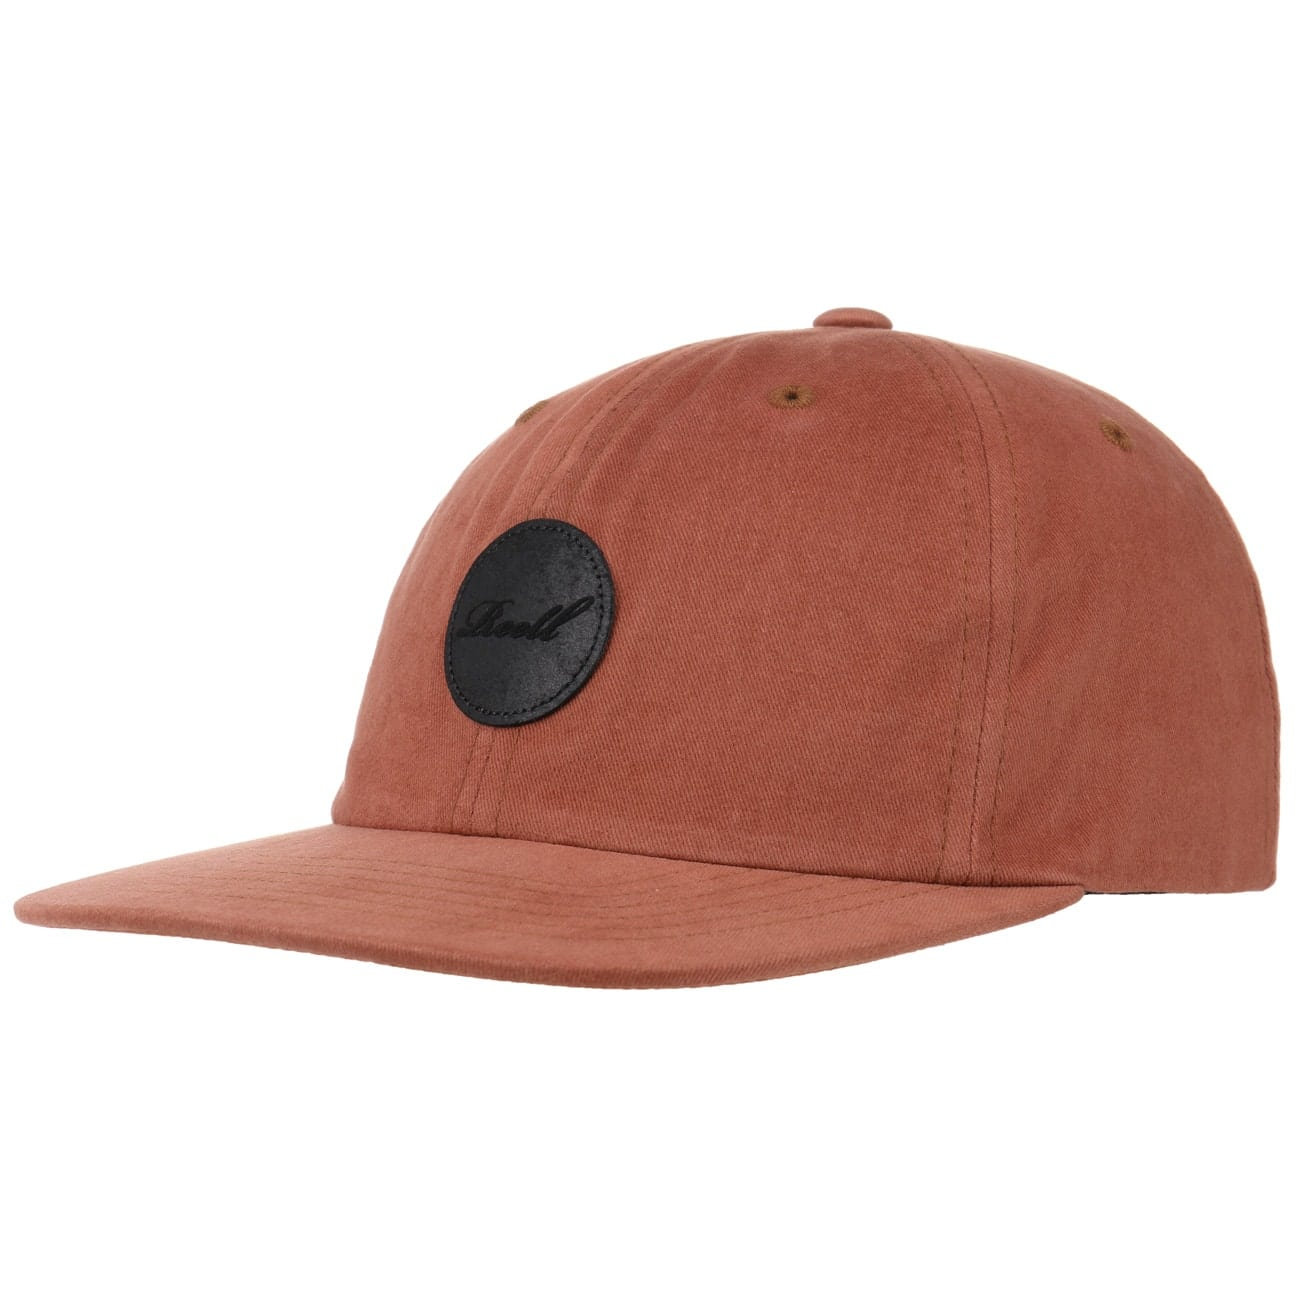 Gorra Flat 6 Panel Strapback by Reell  base cap